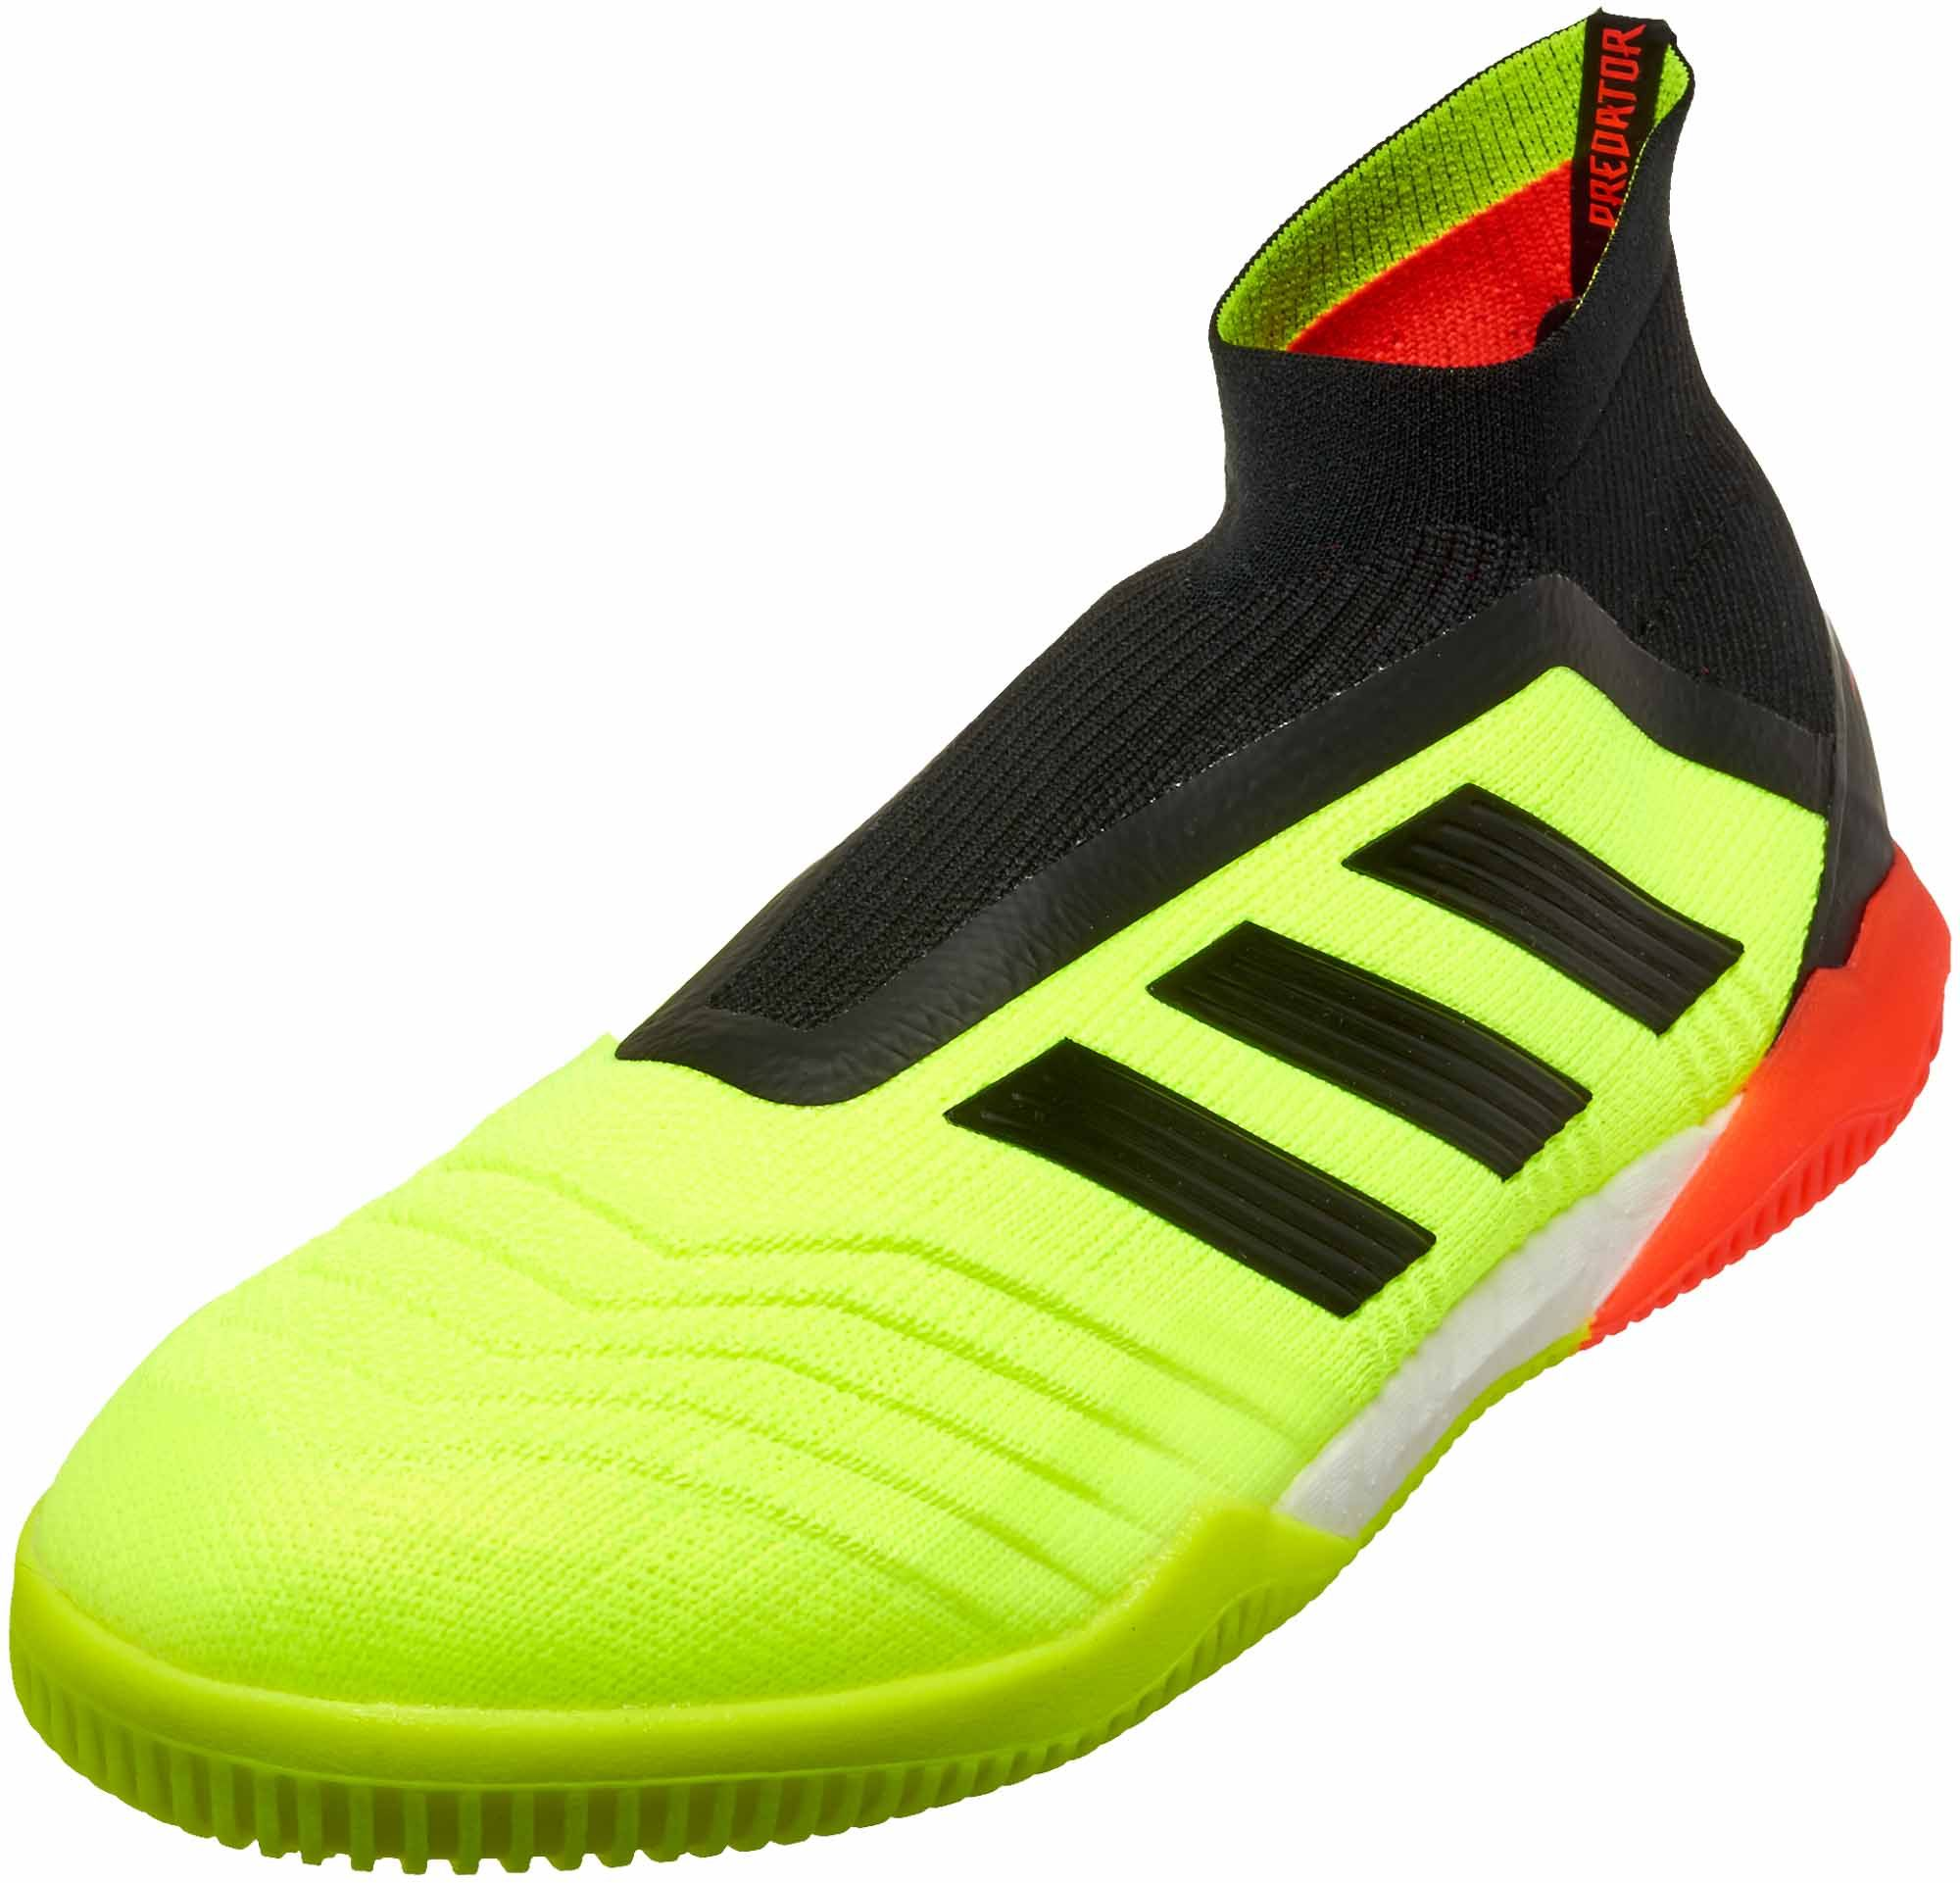 03d0a80d adidas Predator Tango 18 IN – Solar Yellow/Black/Solar Red | Soccer ...